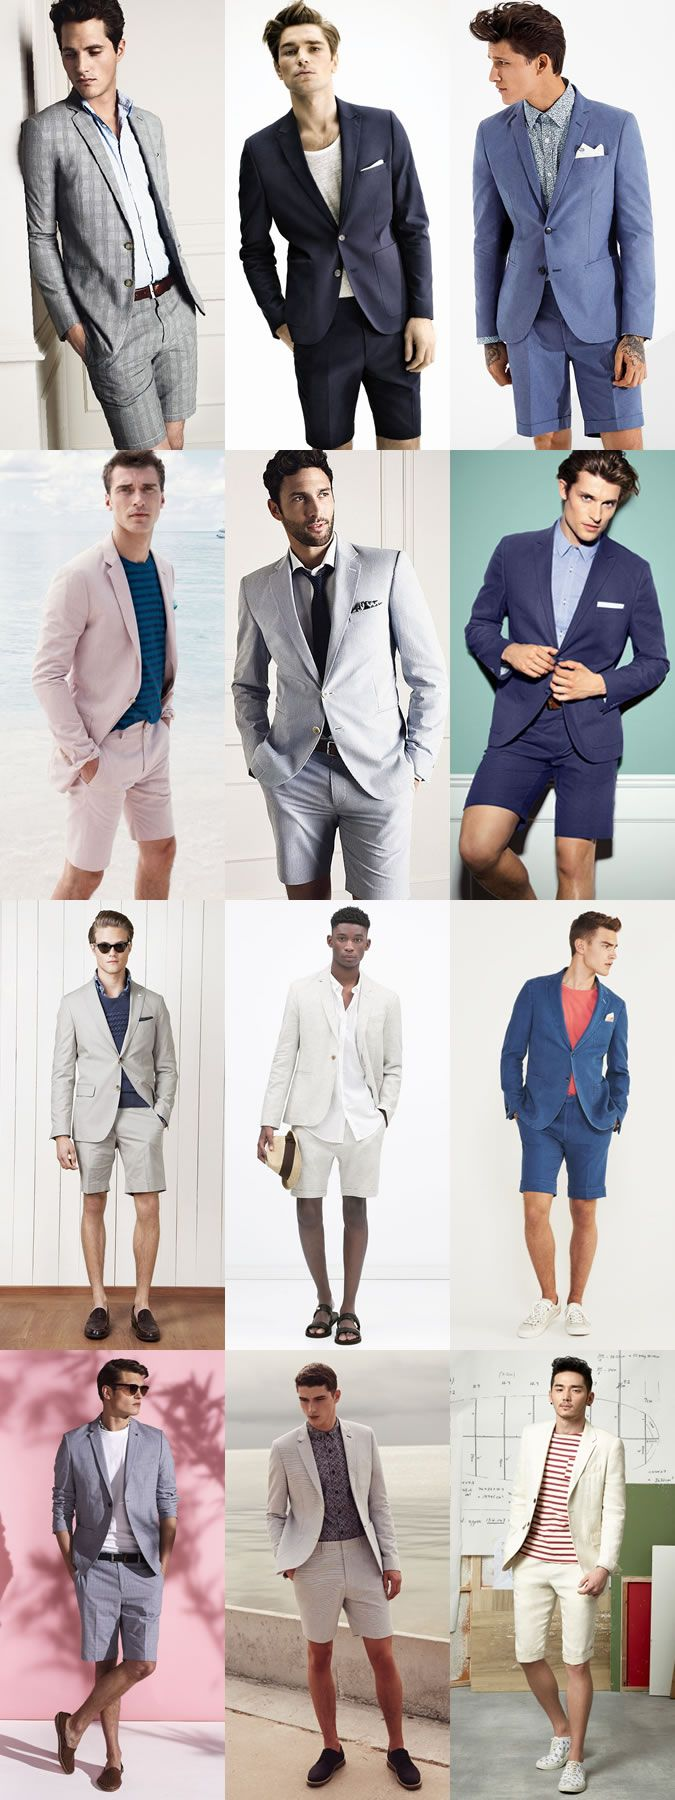 6 Statement Menswear Pieces for Spring/Summer 2015: 1. Men's Shorts Suits Lookbook Inspiration